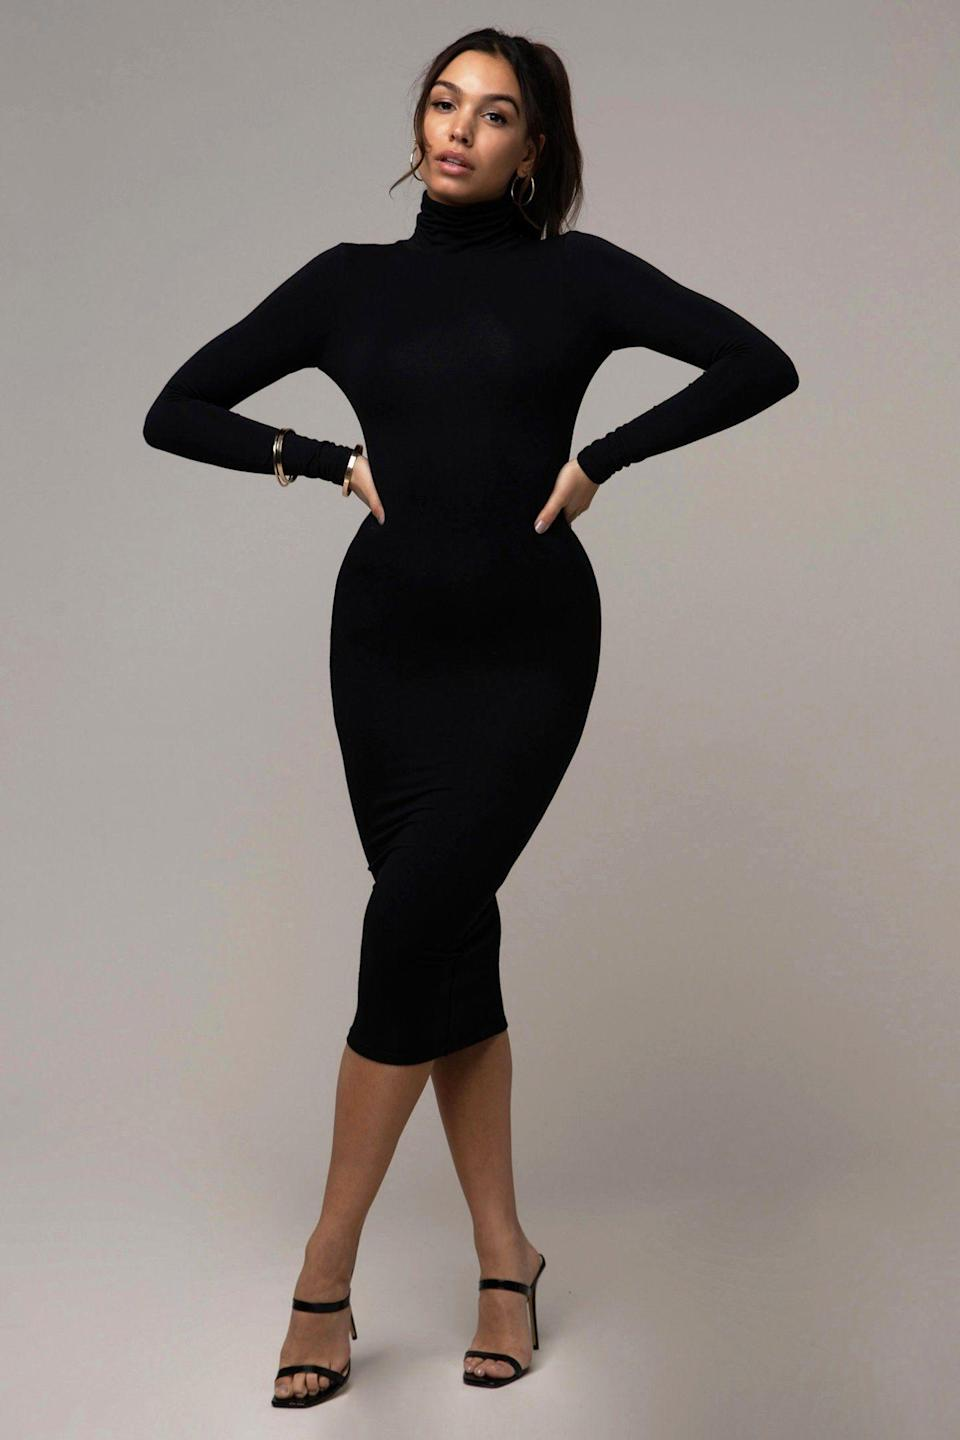 """<p><strong>Reona</strong></p><p>reona.ca</p><p><strong>$165.00</strong></p><p><a href=""""https://www.reona.ca/collections/dresses/products/turtleneck-dress-black"""" rel=""""nofollow noopener"""" target=""""_blank"""" data-ylk=""""slk:Shop Now"""" class=""""link rapid-noclick-resp"""">Shop Now</a></p><p>Everyone needs a turtleneck dress in their wardrobe. The two layers of fabric not only offer support, but also a comfortable form-fitting look. </p>"""